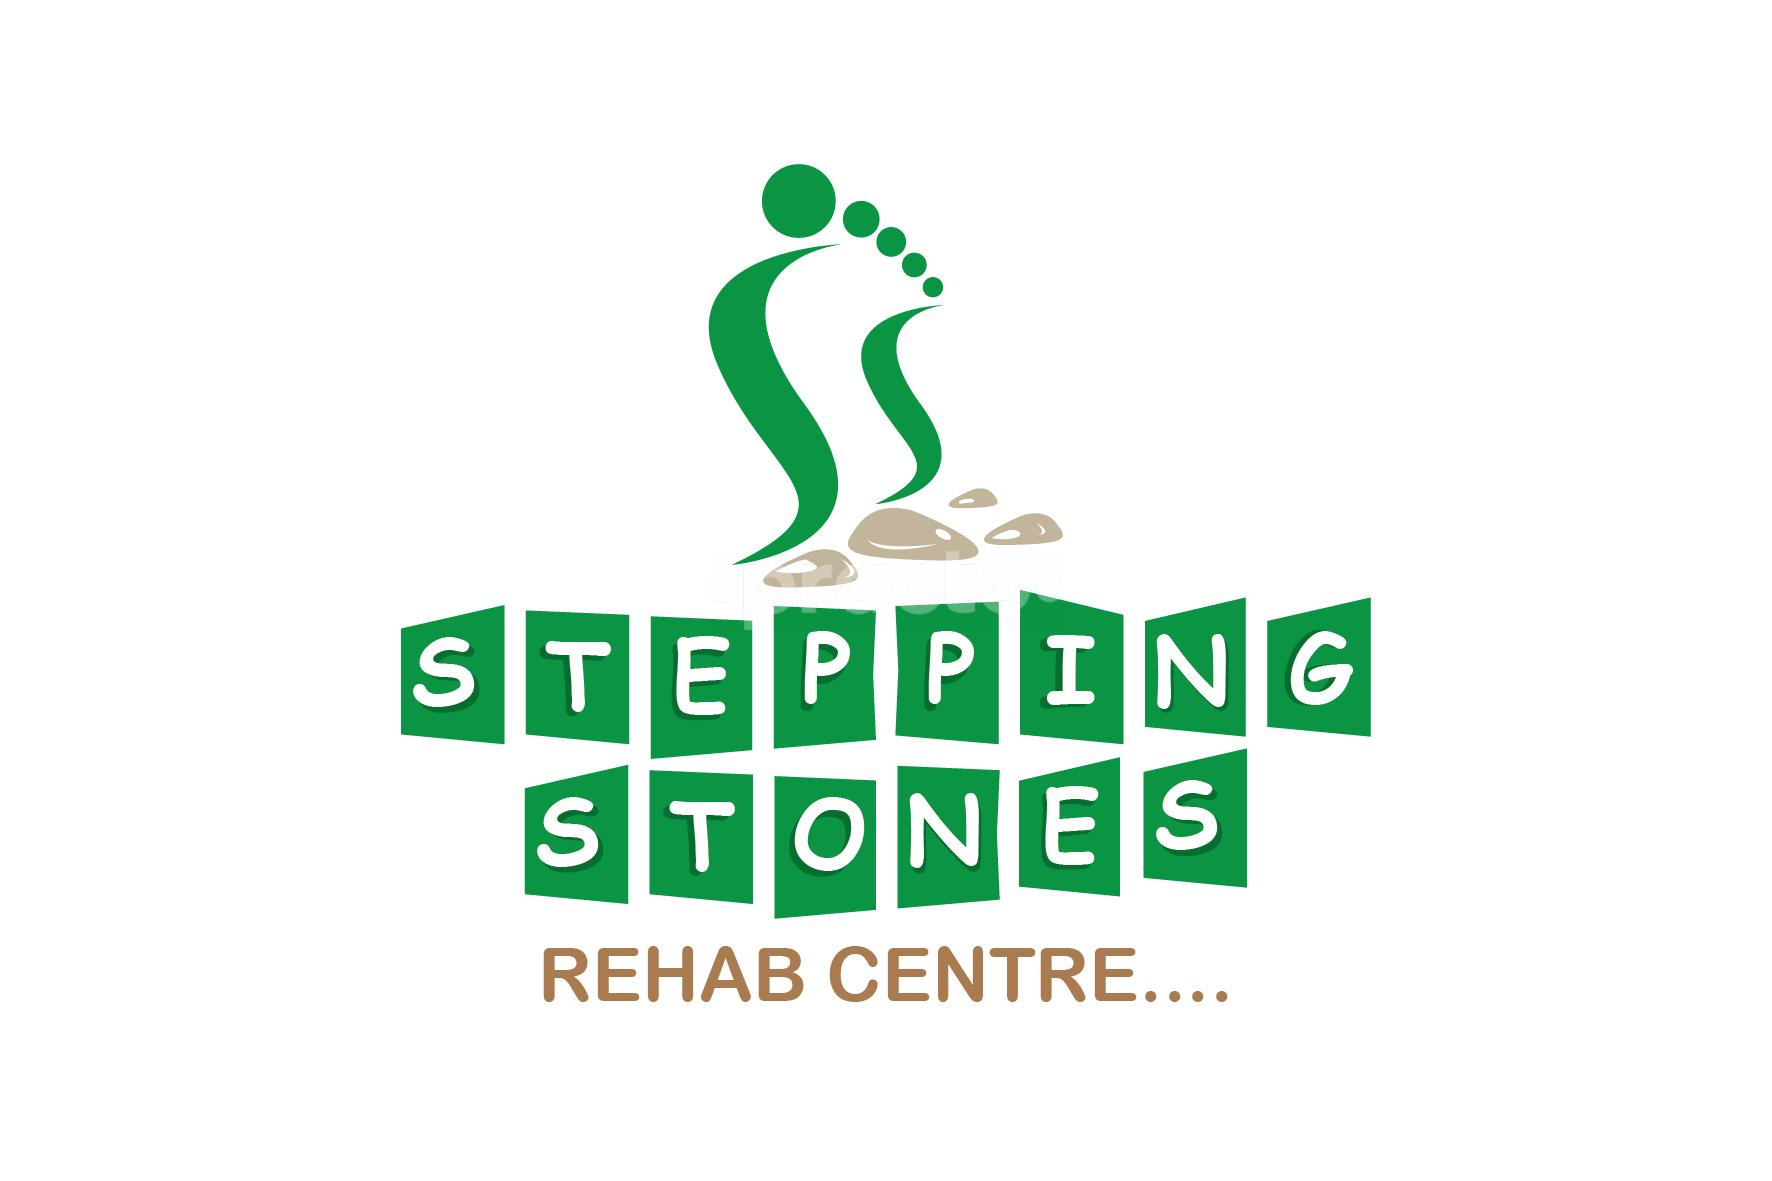 Stepping Stones Rehab Centre